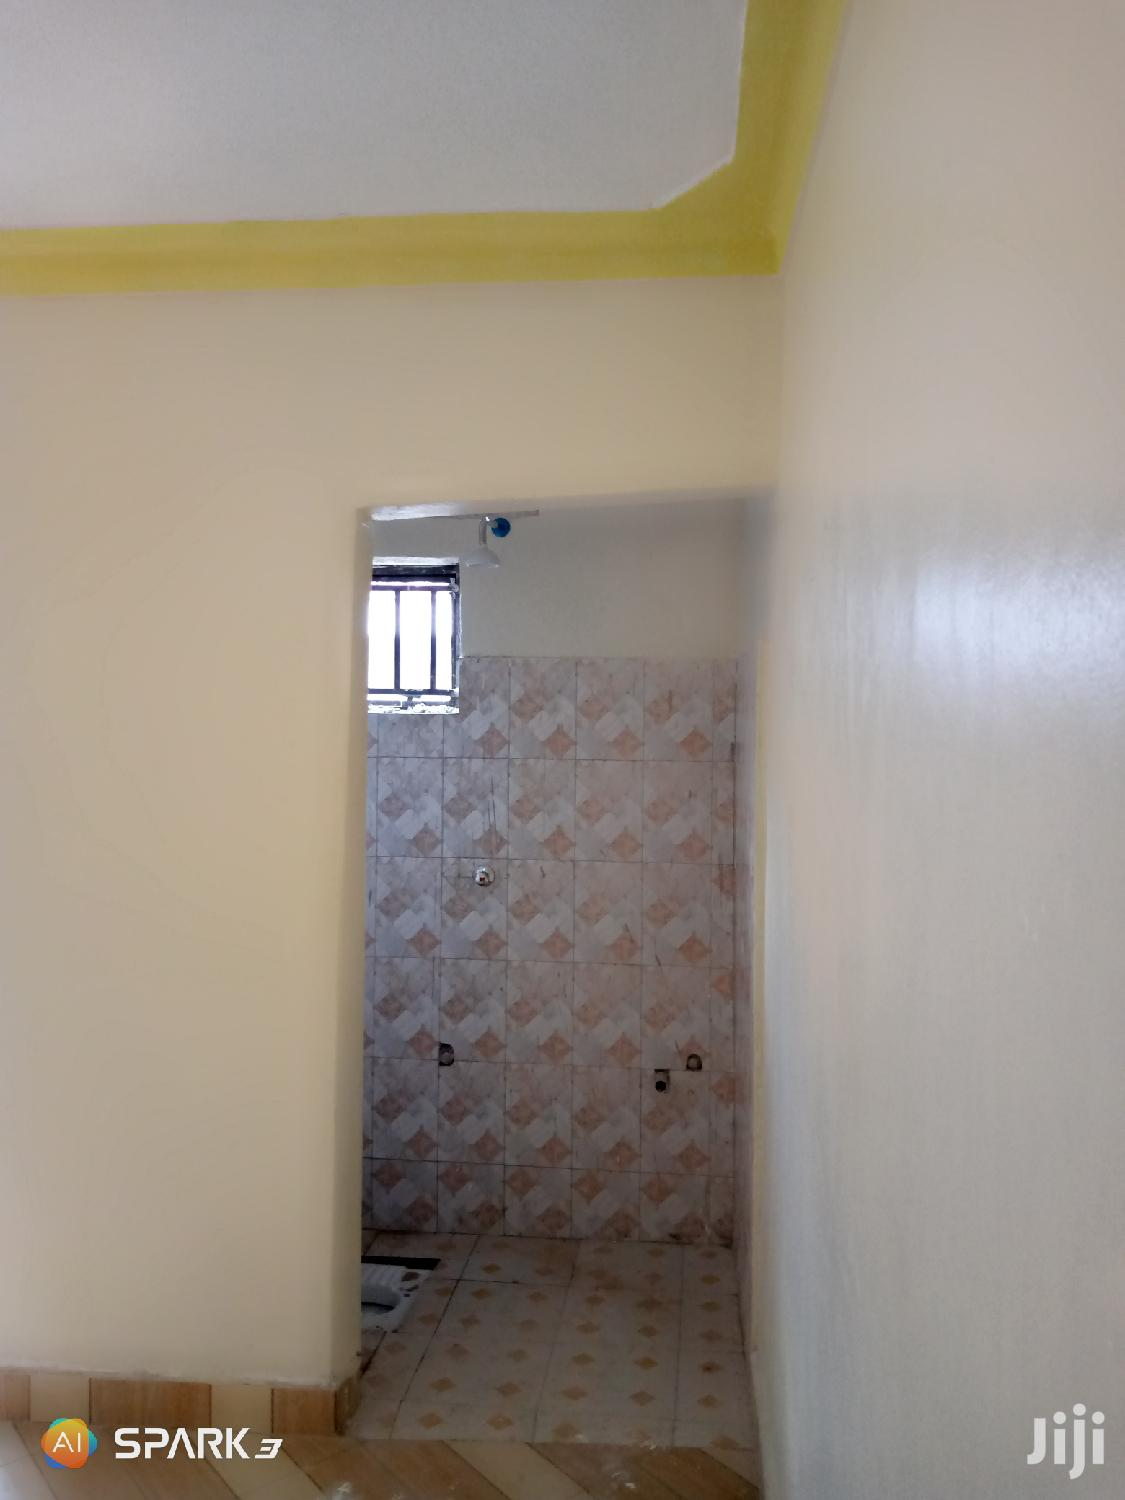 Brandnew Single Room for Rent in Bweyogerere | Houses & Apartments For Rent for sale in Wakiso, Central Region, Uganda